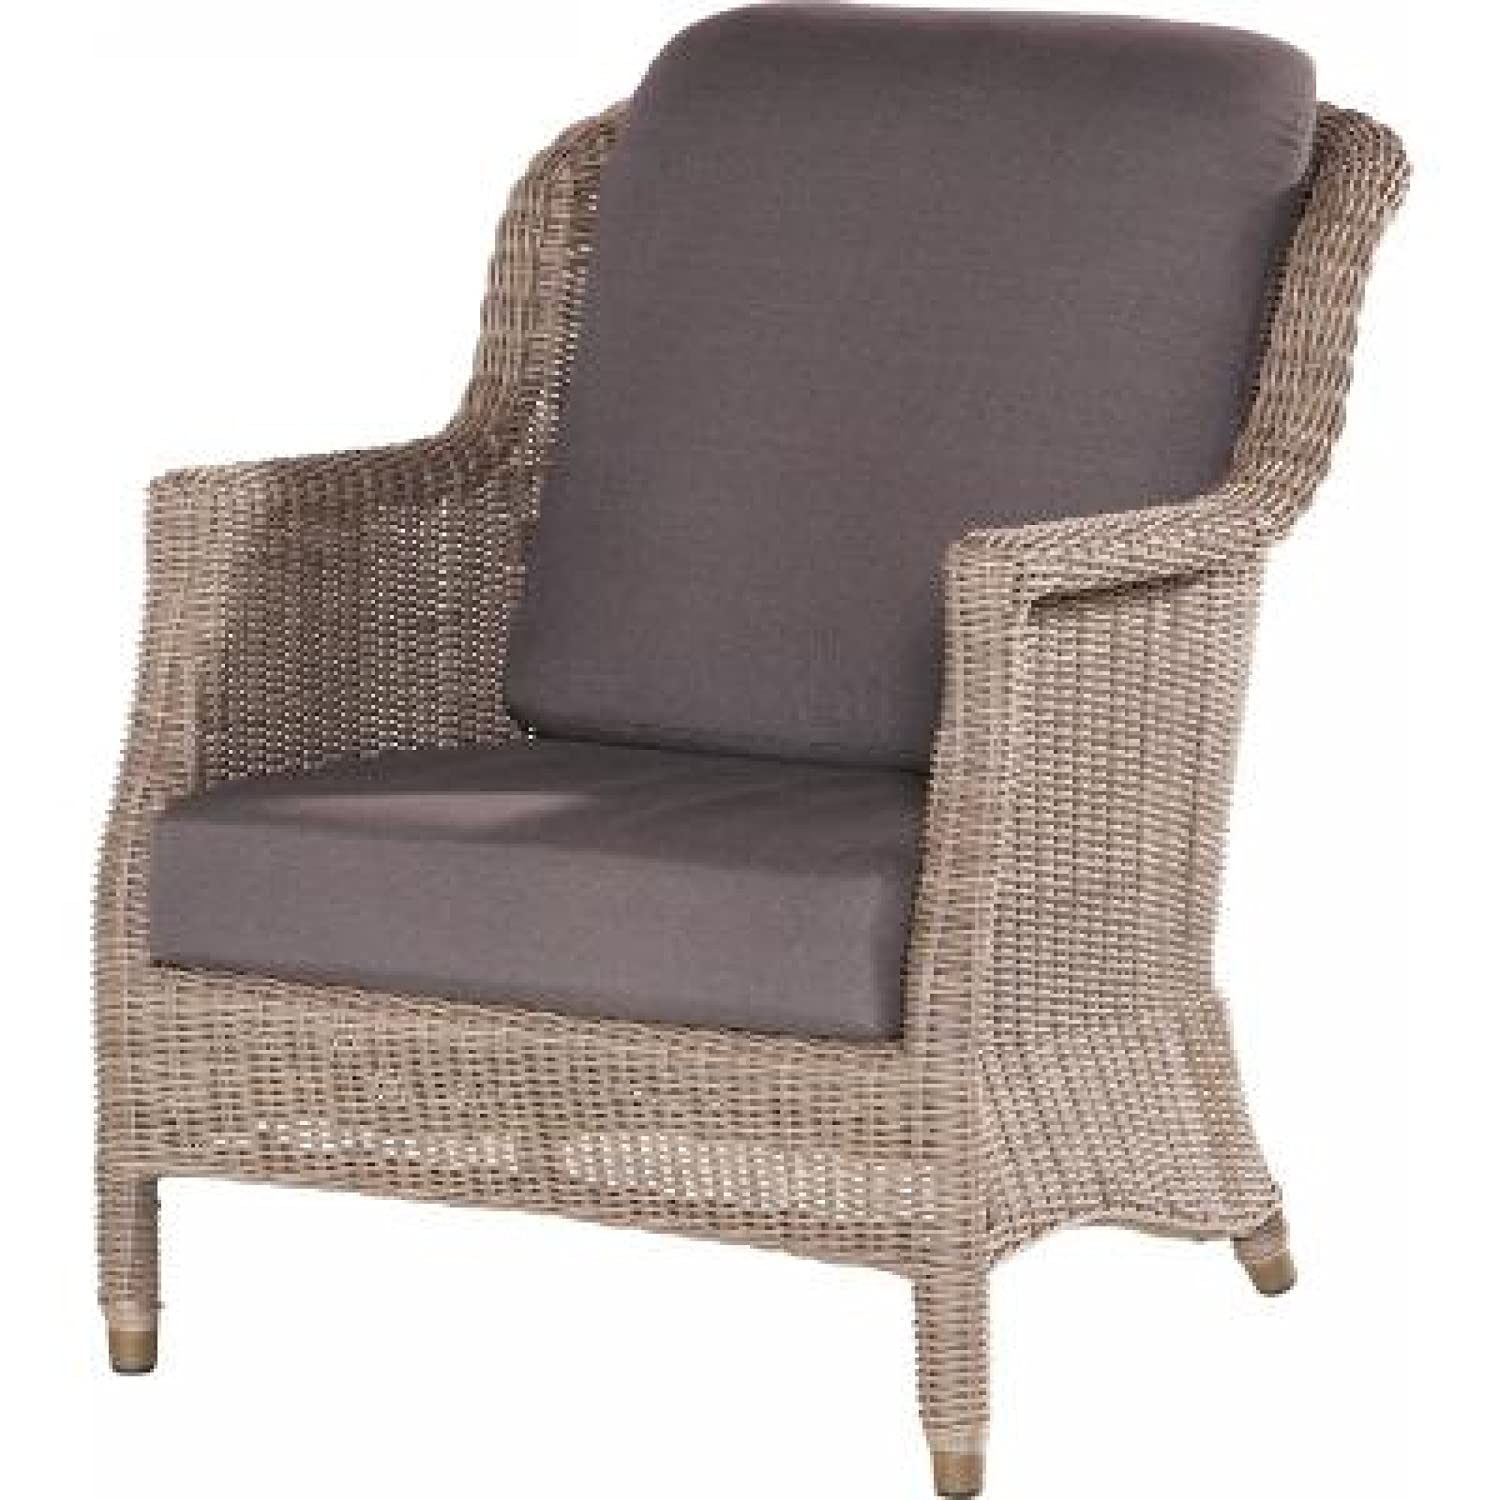 4Seasons Outdoor Del Mar Sessel living Polyrattan Pure günstig online kaufen